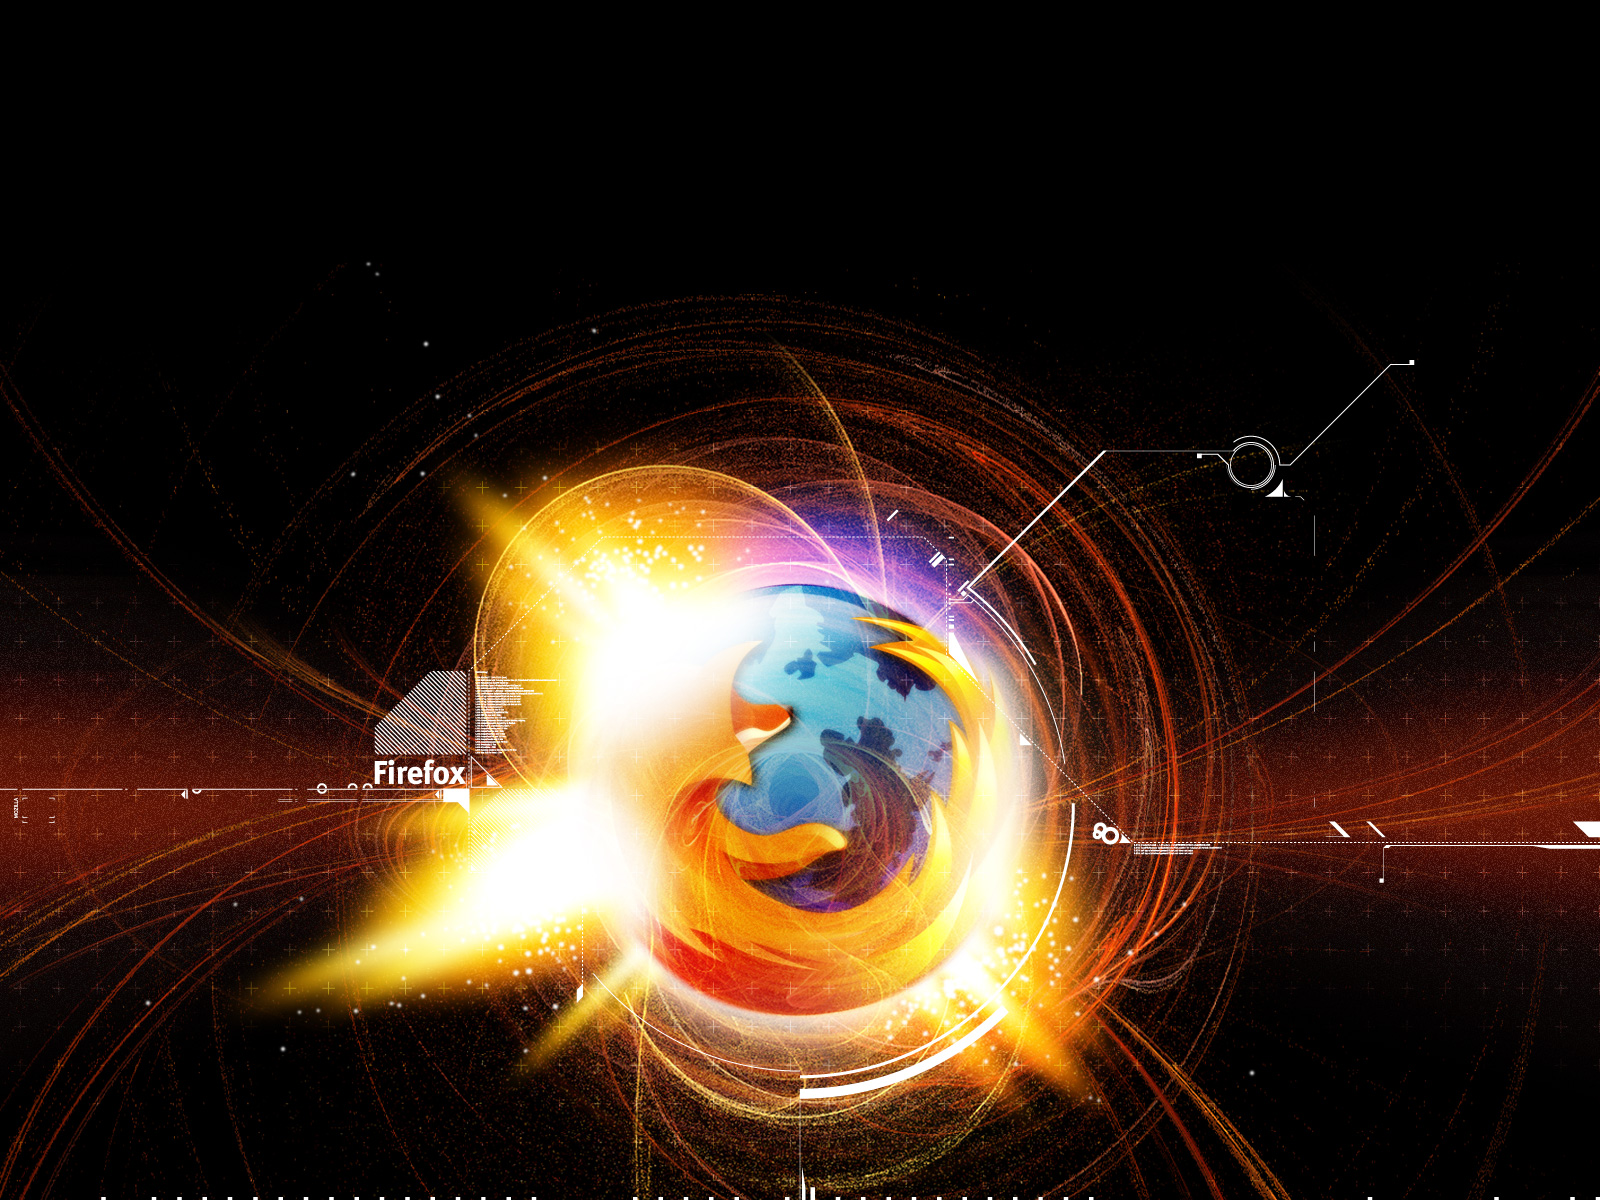 WALLPAPER MOZILLA FIREFOX